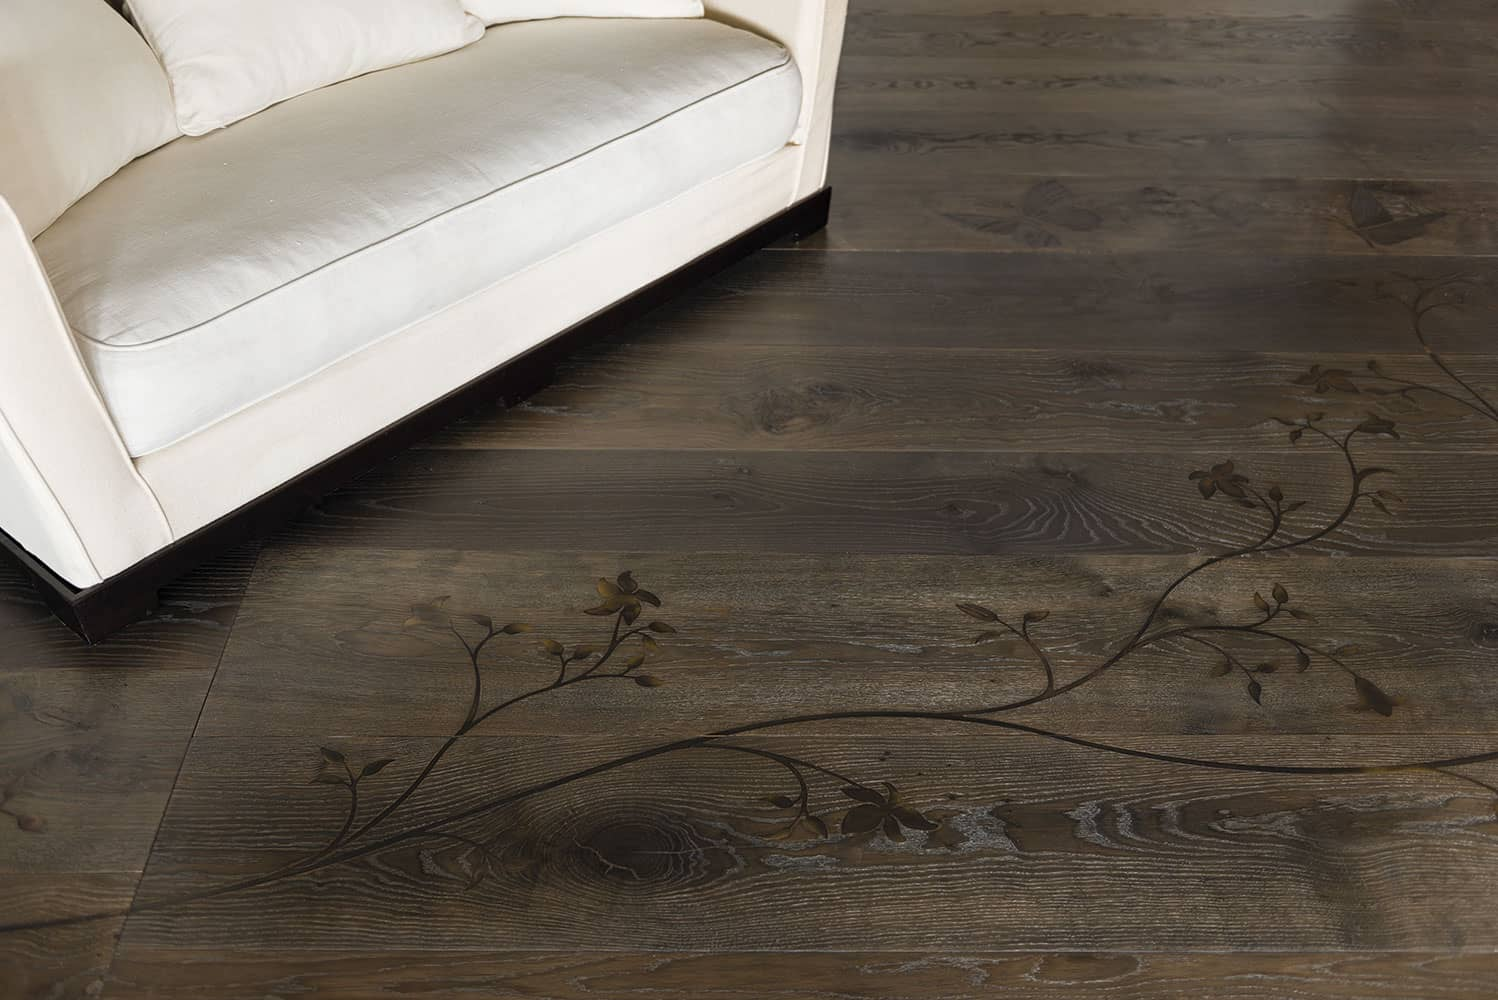 Inlay Wood Flooring: 8 Stunning Design Ideas